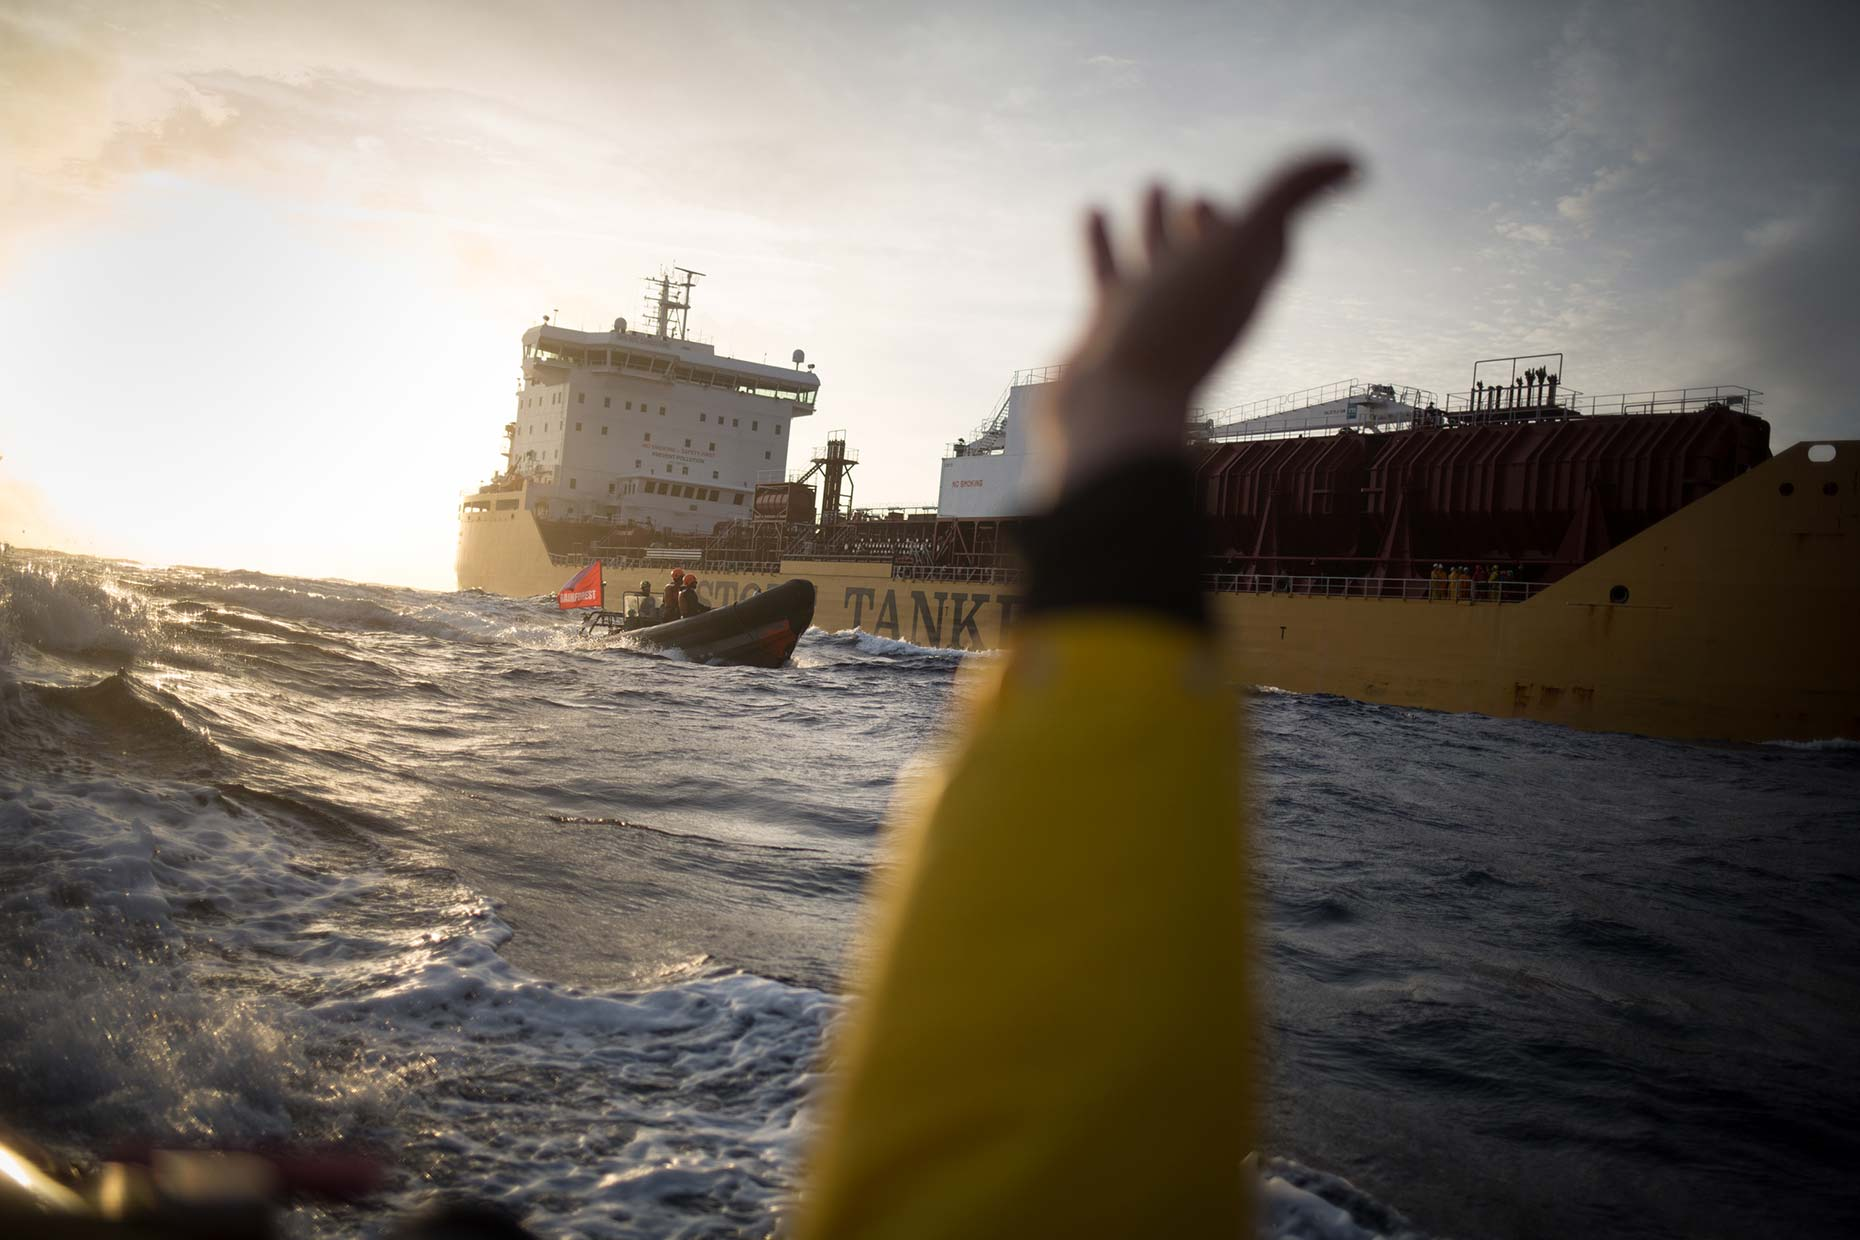 Greenpeace anti-palm oil action at sea, by Scotland photographer